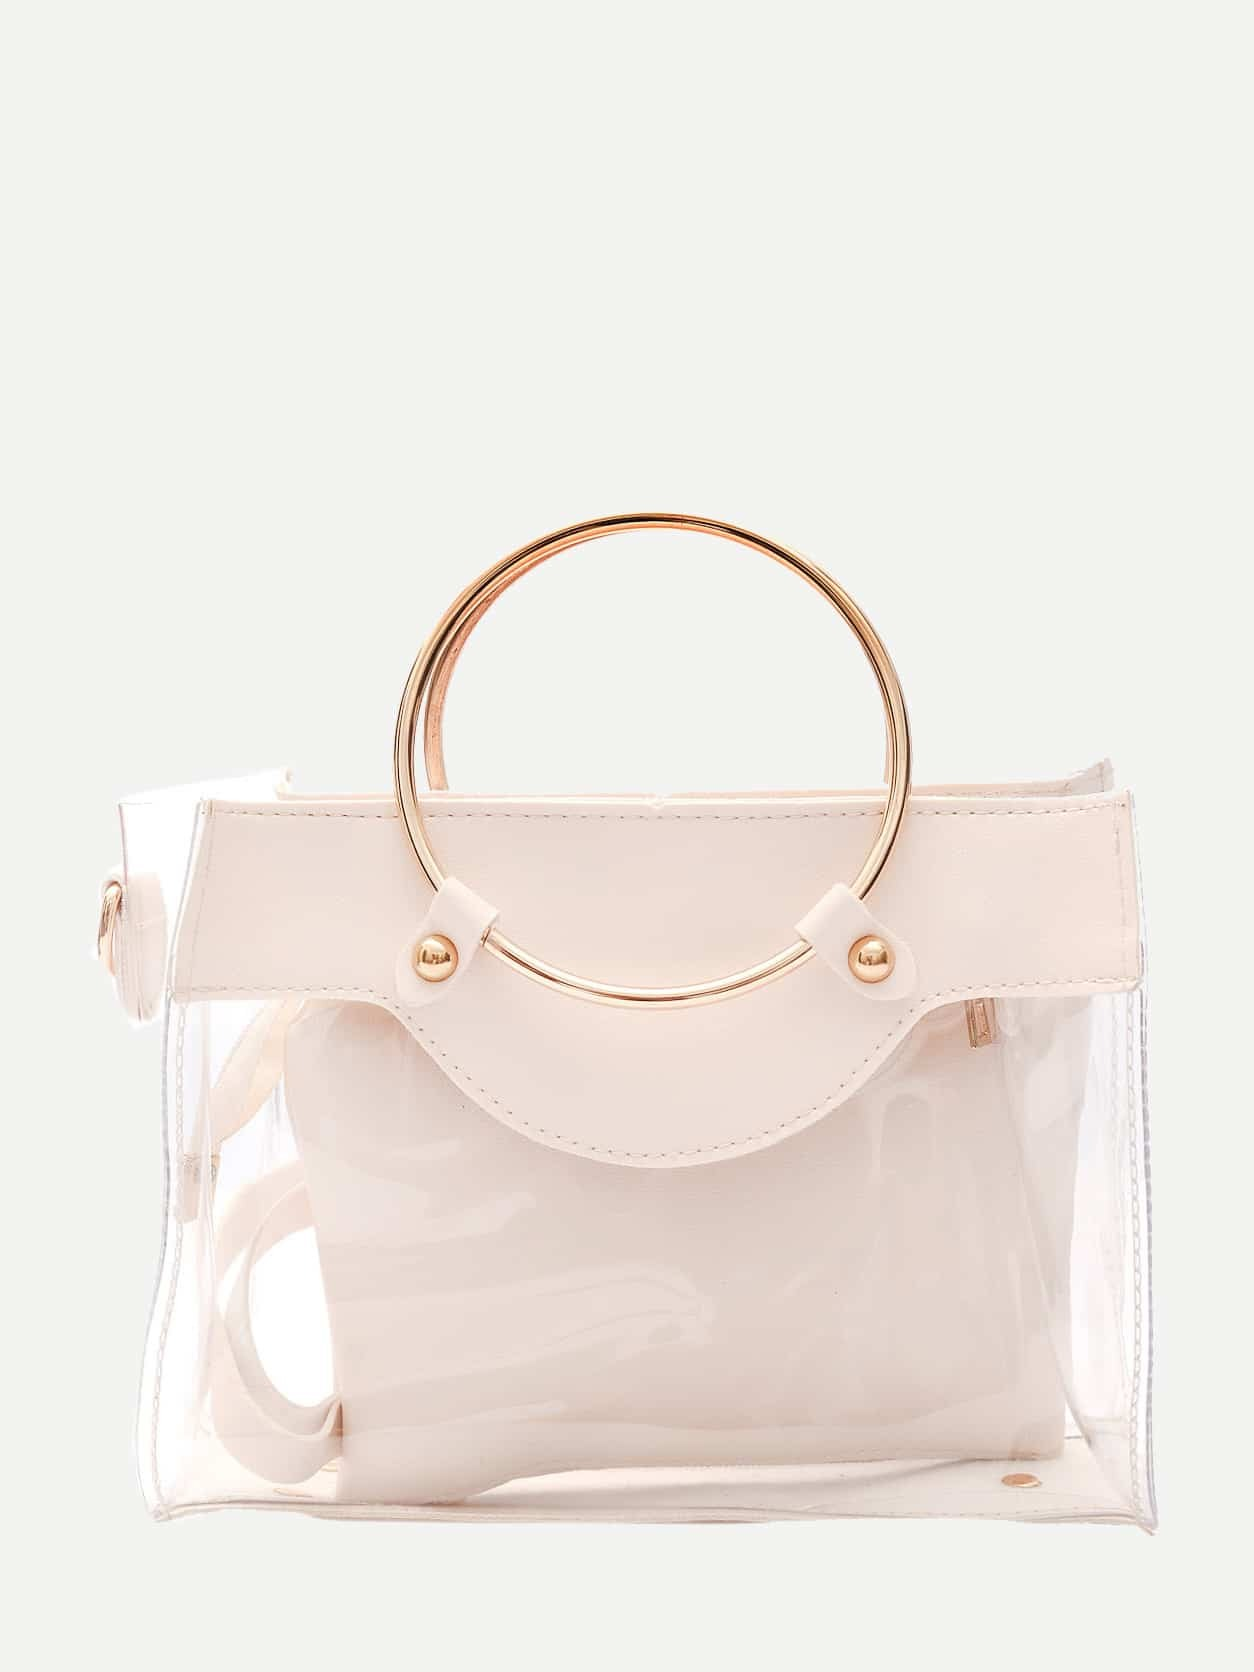 Clear Ring Handle Bag With Inner Clutch transparent envelope clutch bag